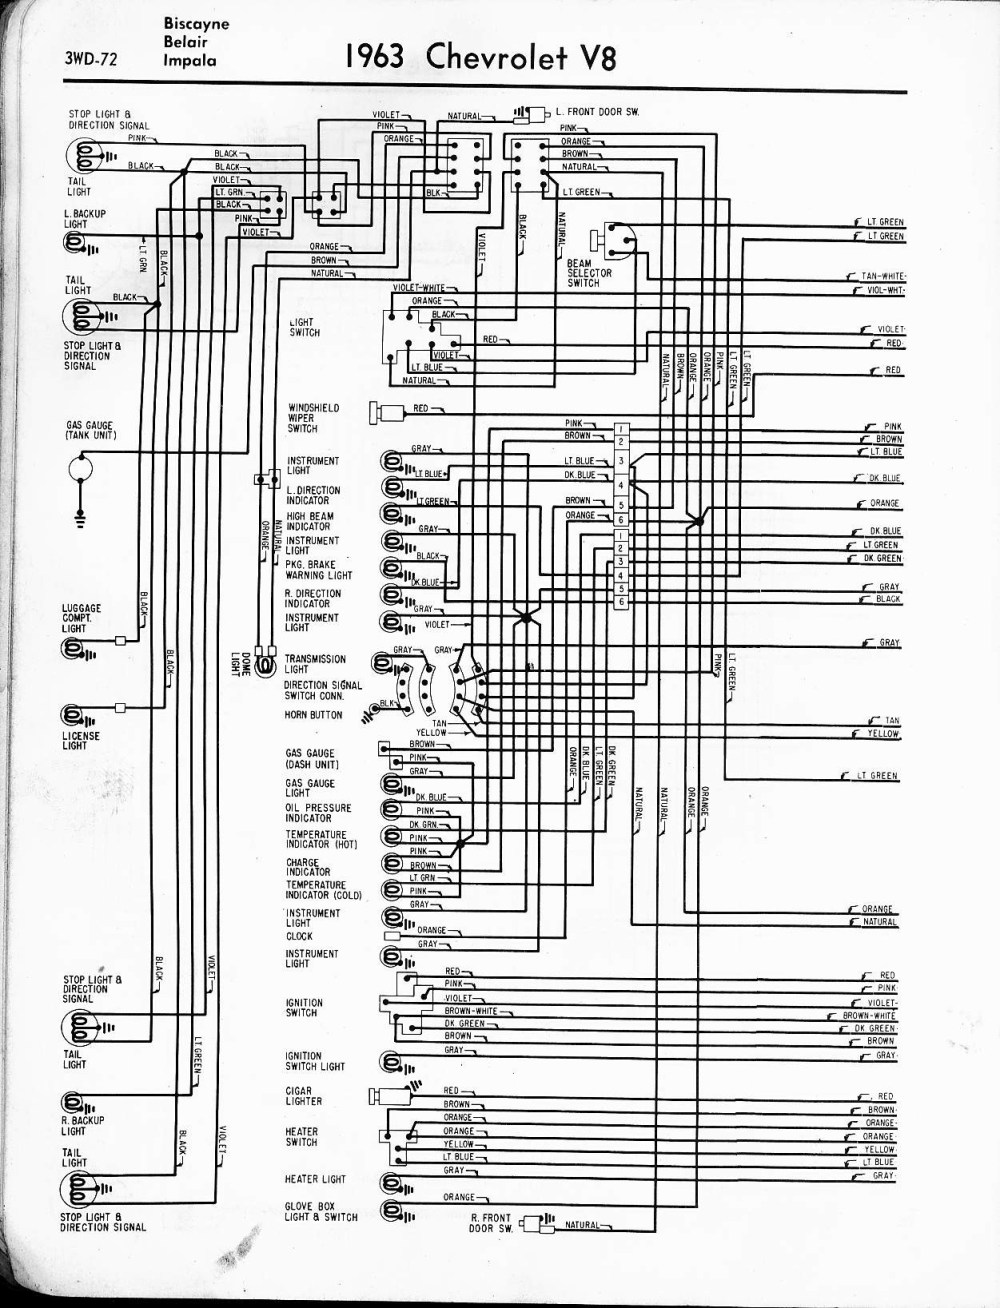 medium resolution of 1967 chevy impala wiring harness diagram trusted wiring diagram 2003 malibu stereo wiring diagram door wiring